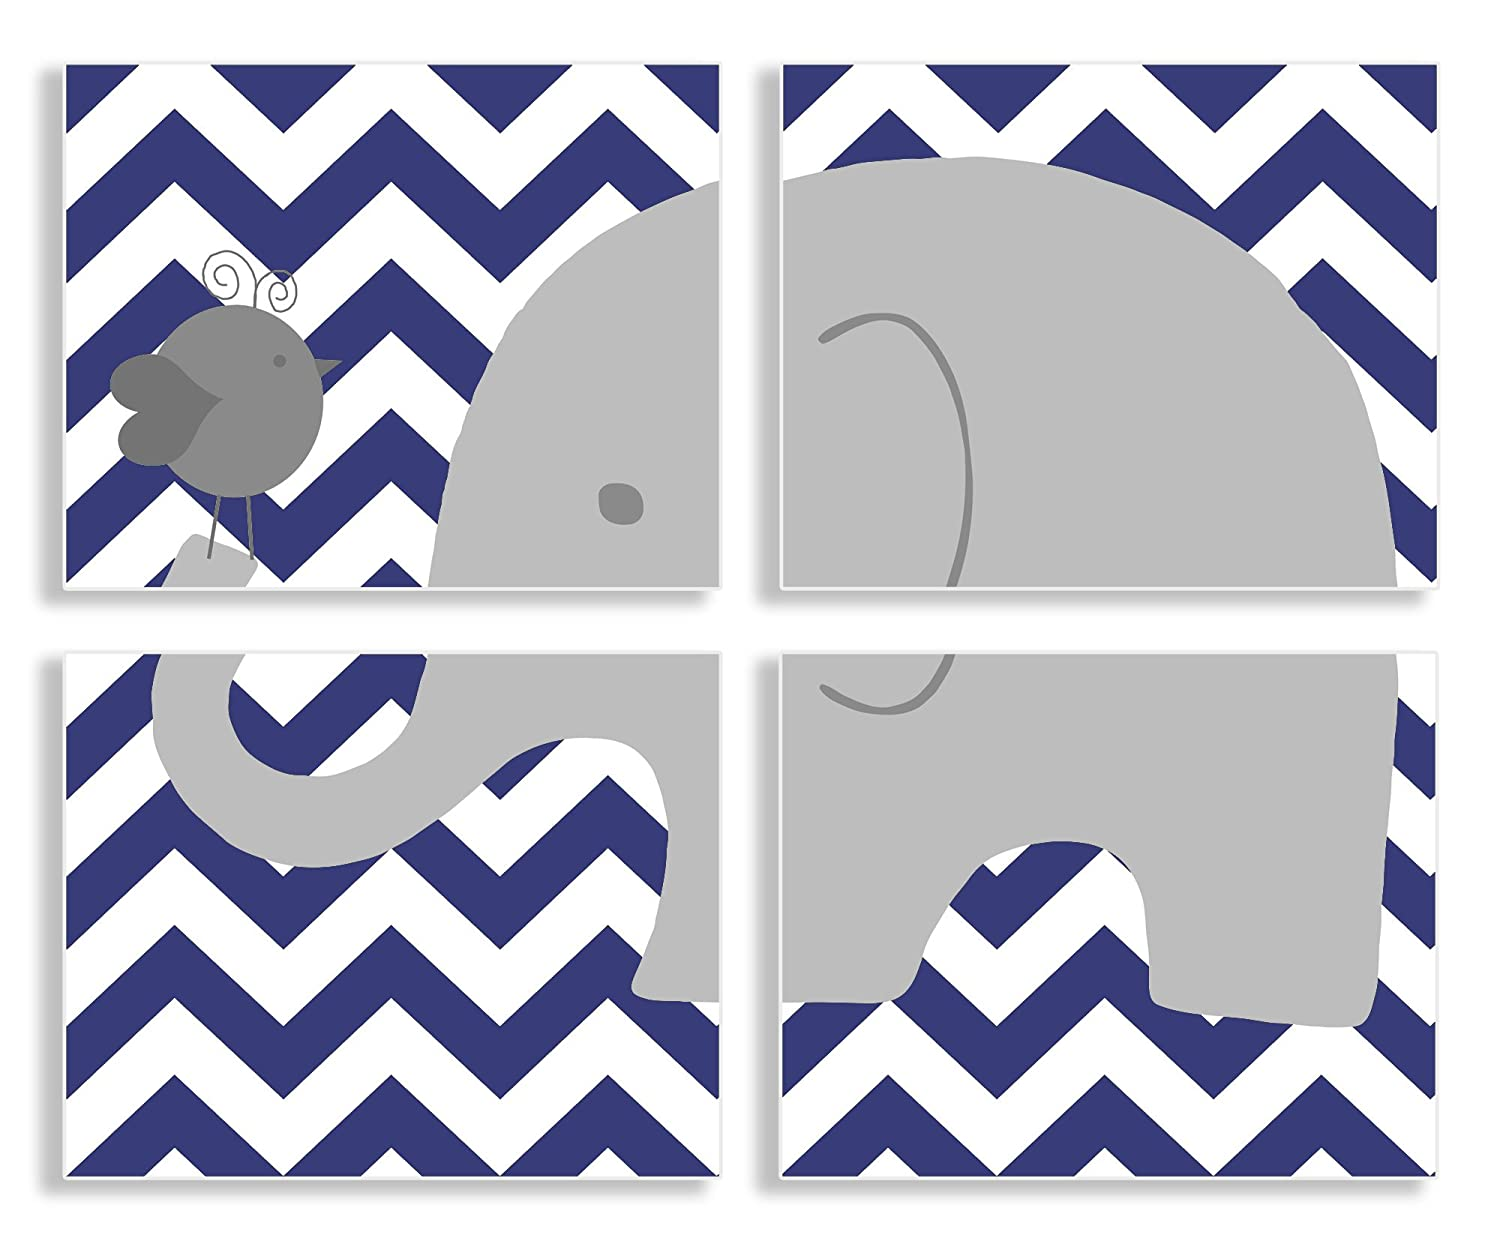 Rectangle Wall Plaque Set Proudly Made in USA The Kids Room by Stupell The Kids Room By Stupell Gray Elephant And Birdie On Blue Chevron 4-Pc KIDTJ brp-1460 quad navy